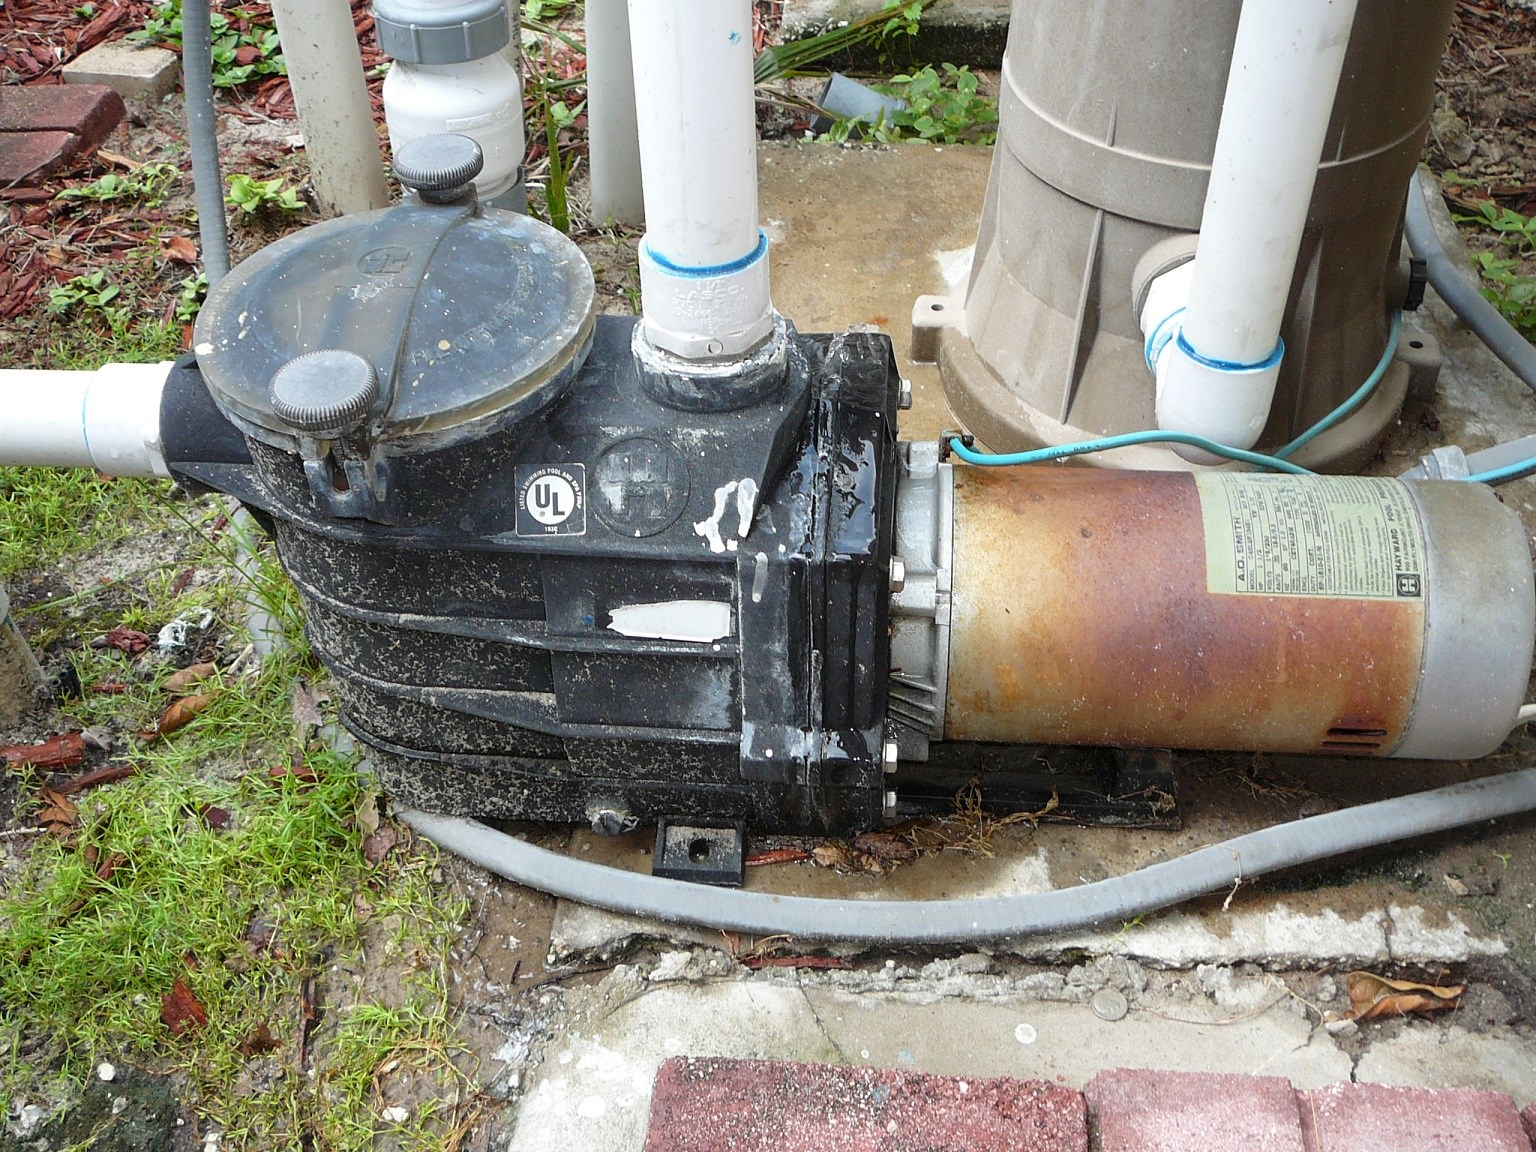 How To Troubleshoot A Pool Pump Motor Fails Start Pentair Wiring Diagram If Youve Had Your While Or Just Installed New One And It Decides Not Here Is List Of Steps Check Get